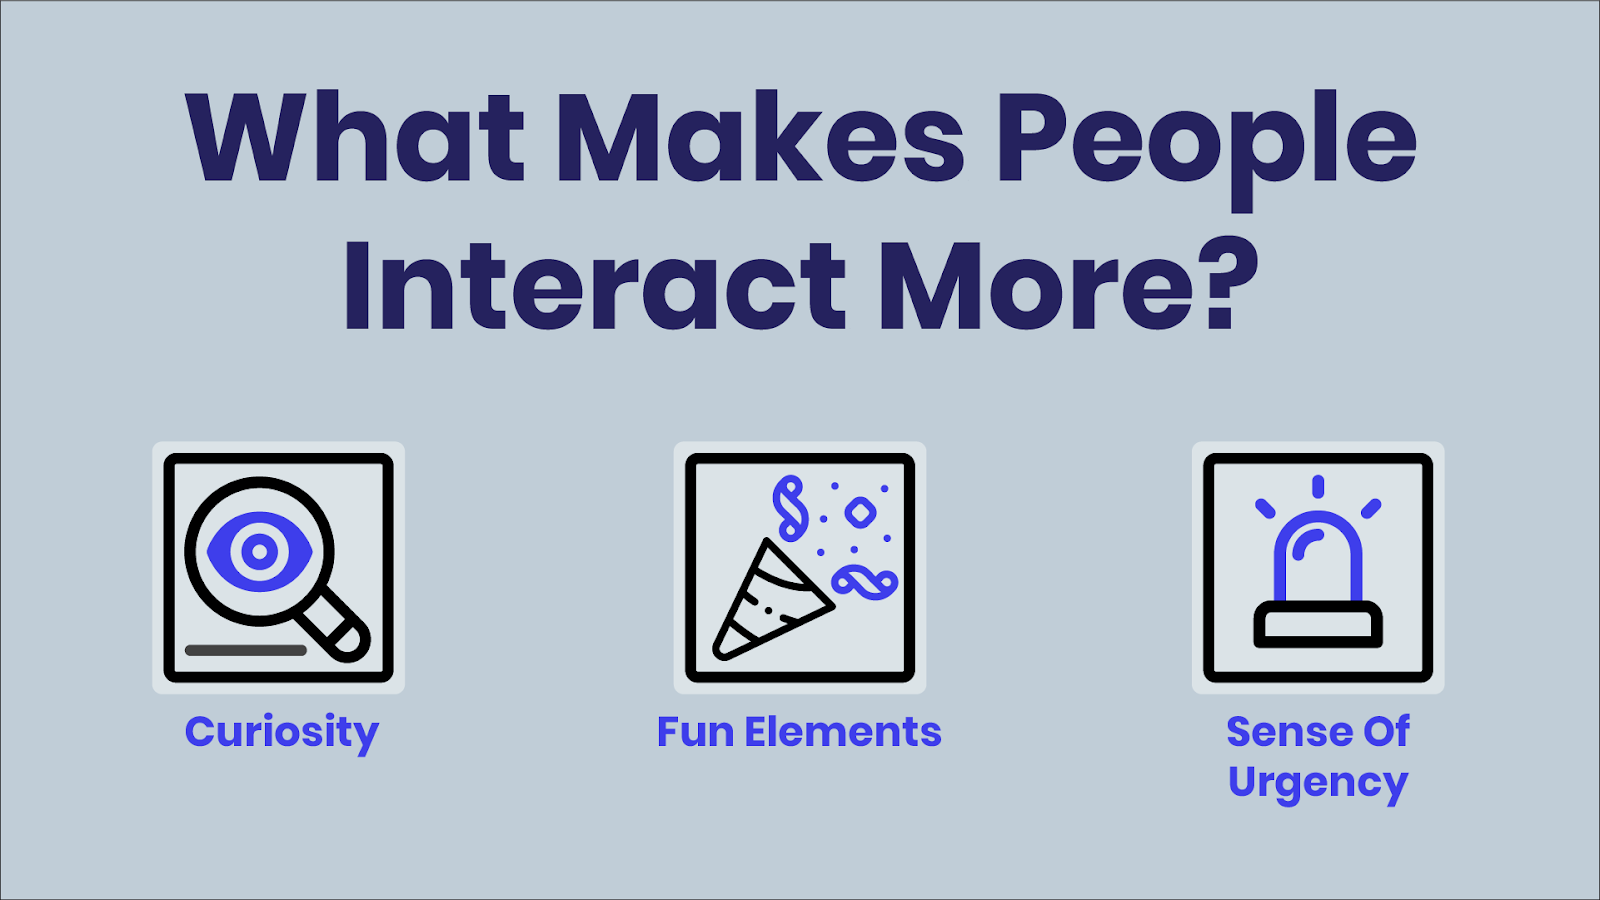 3 factors that make people interact more